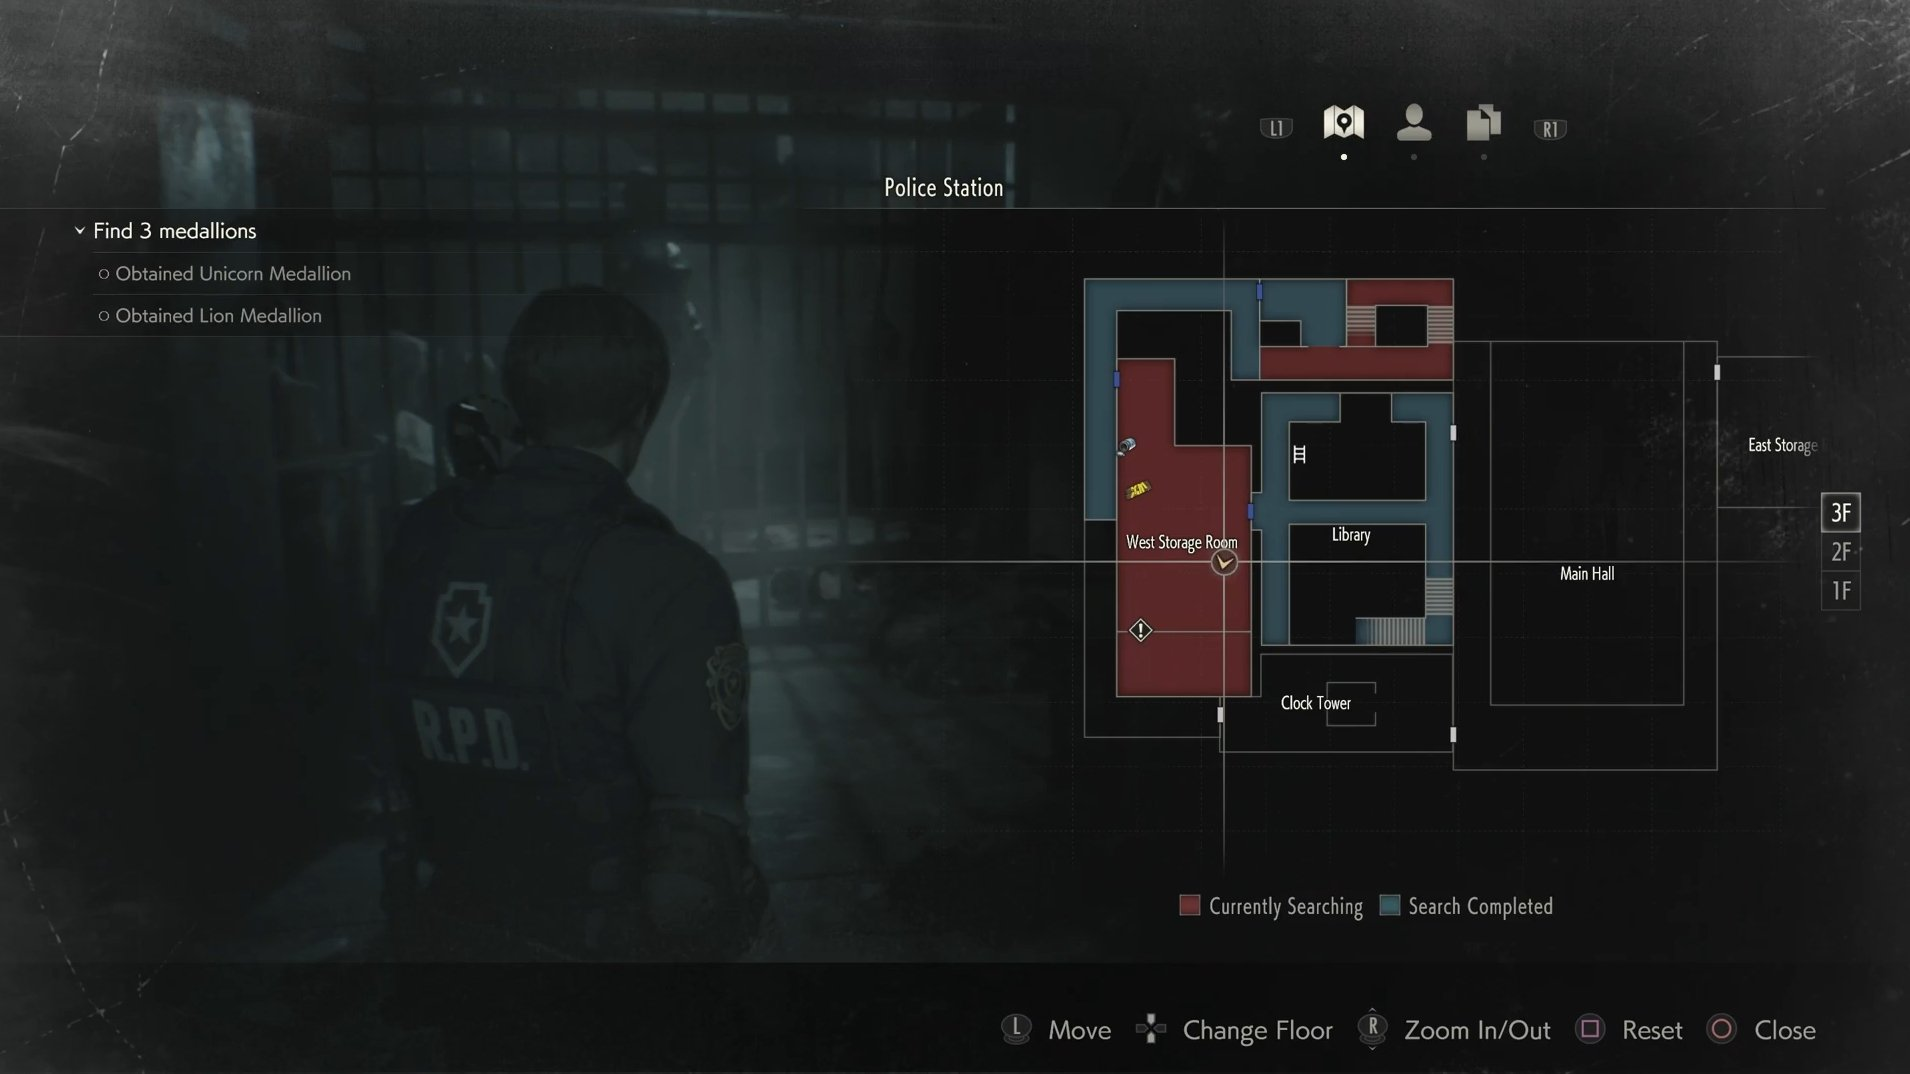 Where to find the Maiden Medallion in Resident Evil 2